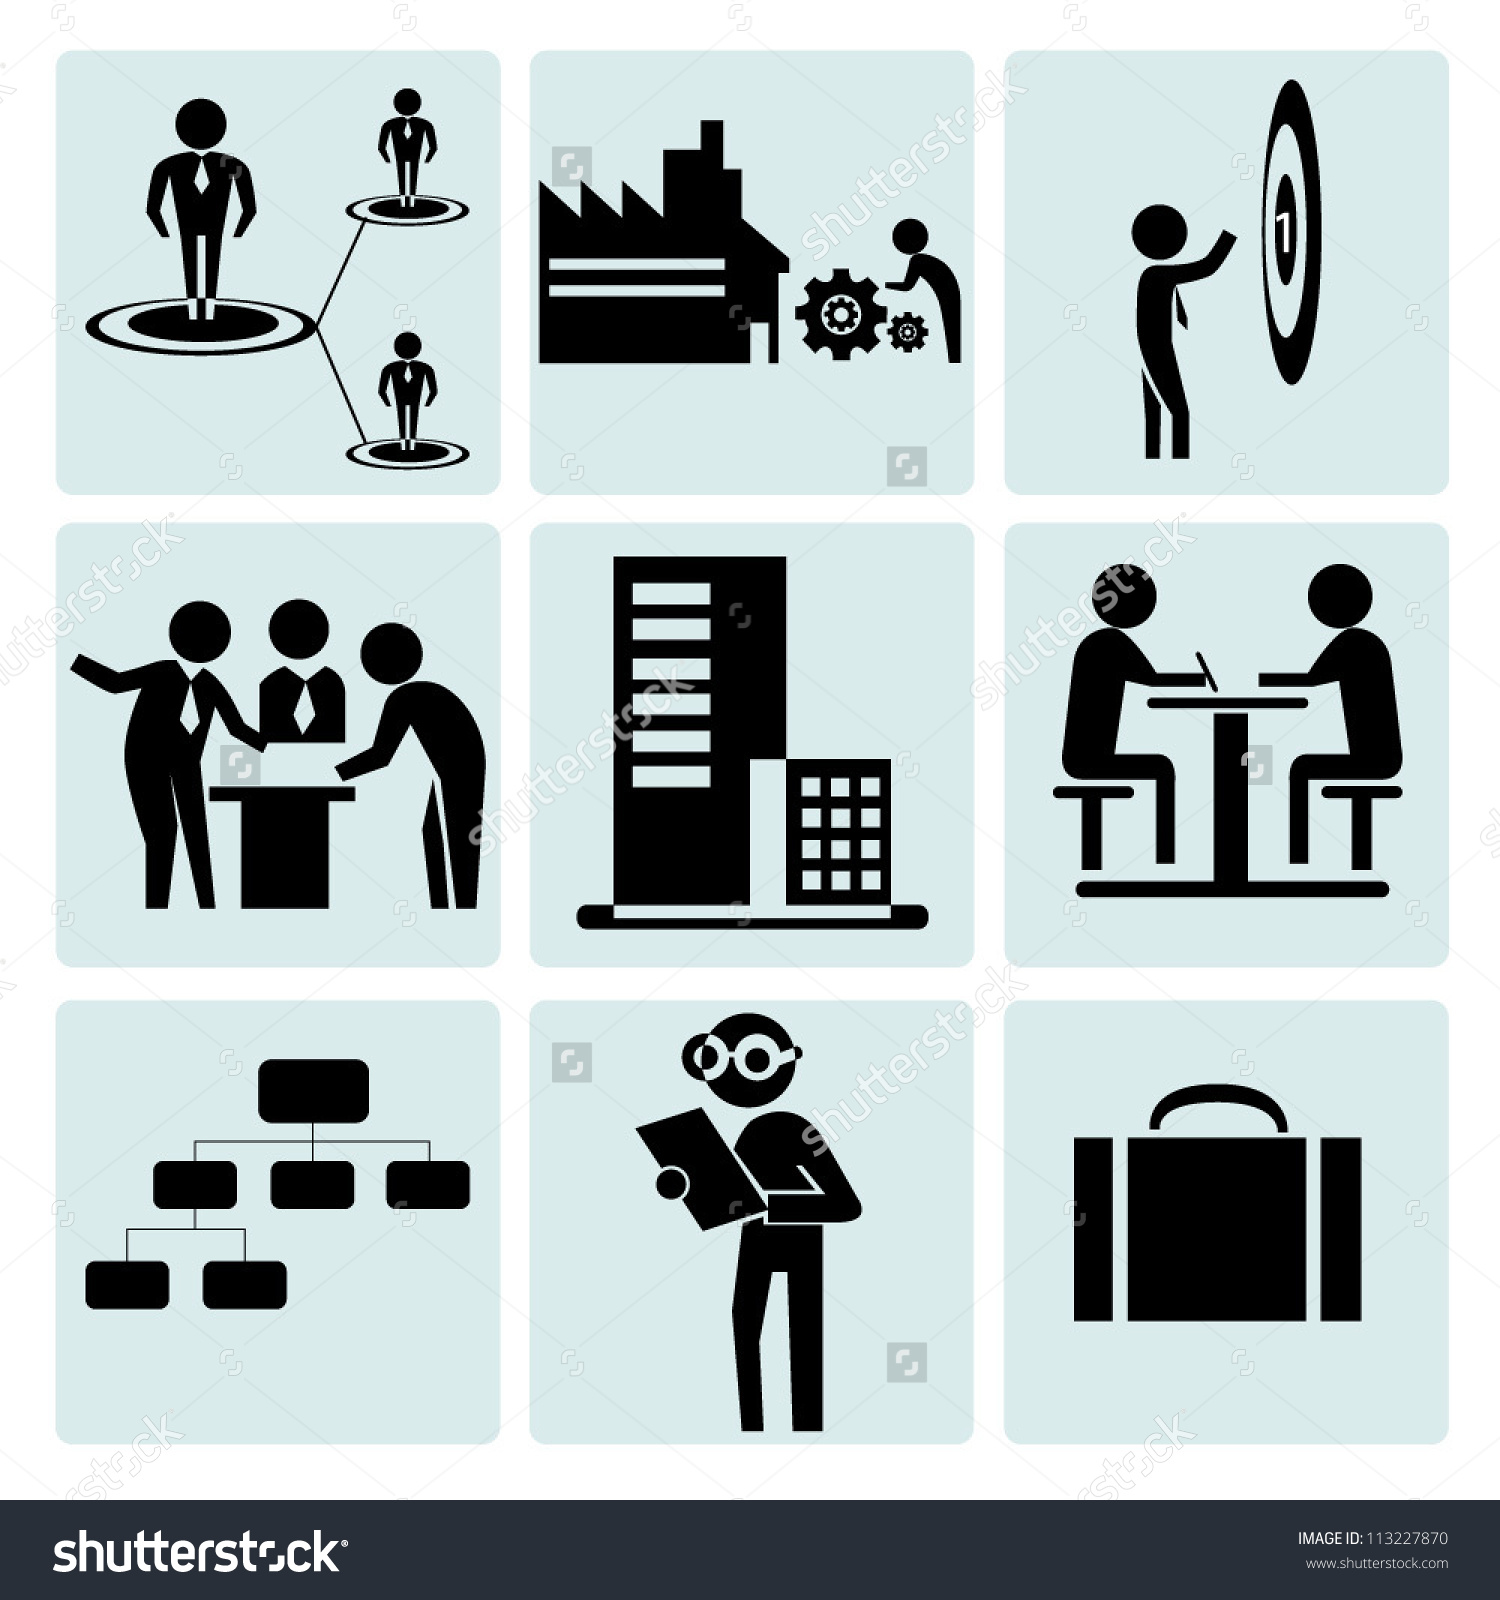 Working Task Operation Business Management Icon Stock Vector.